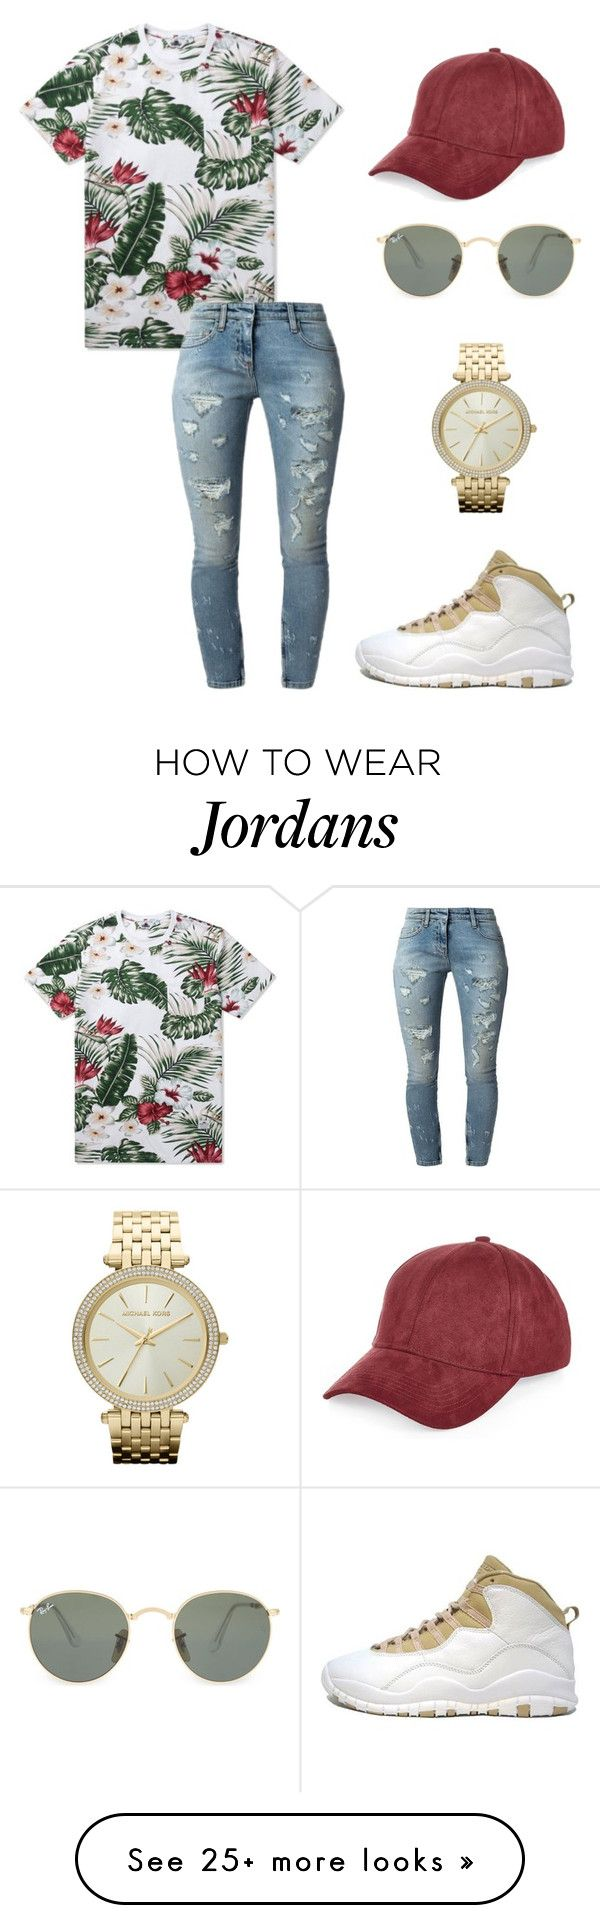 """""""Untitled #2606"""" by princessceairra on Polyvore featuring Penfield, Retrò, River Island, Faith Connexion, Ray-Ban and Michael Kors"""